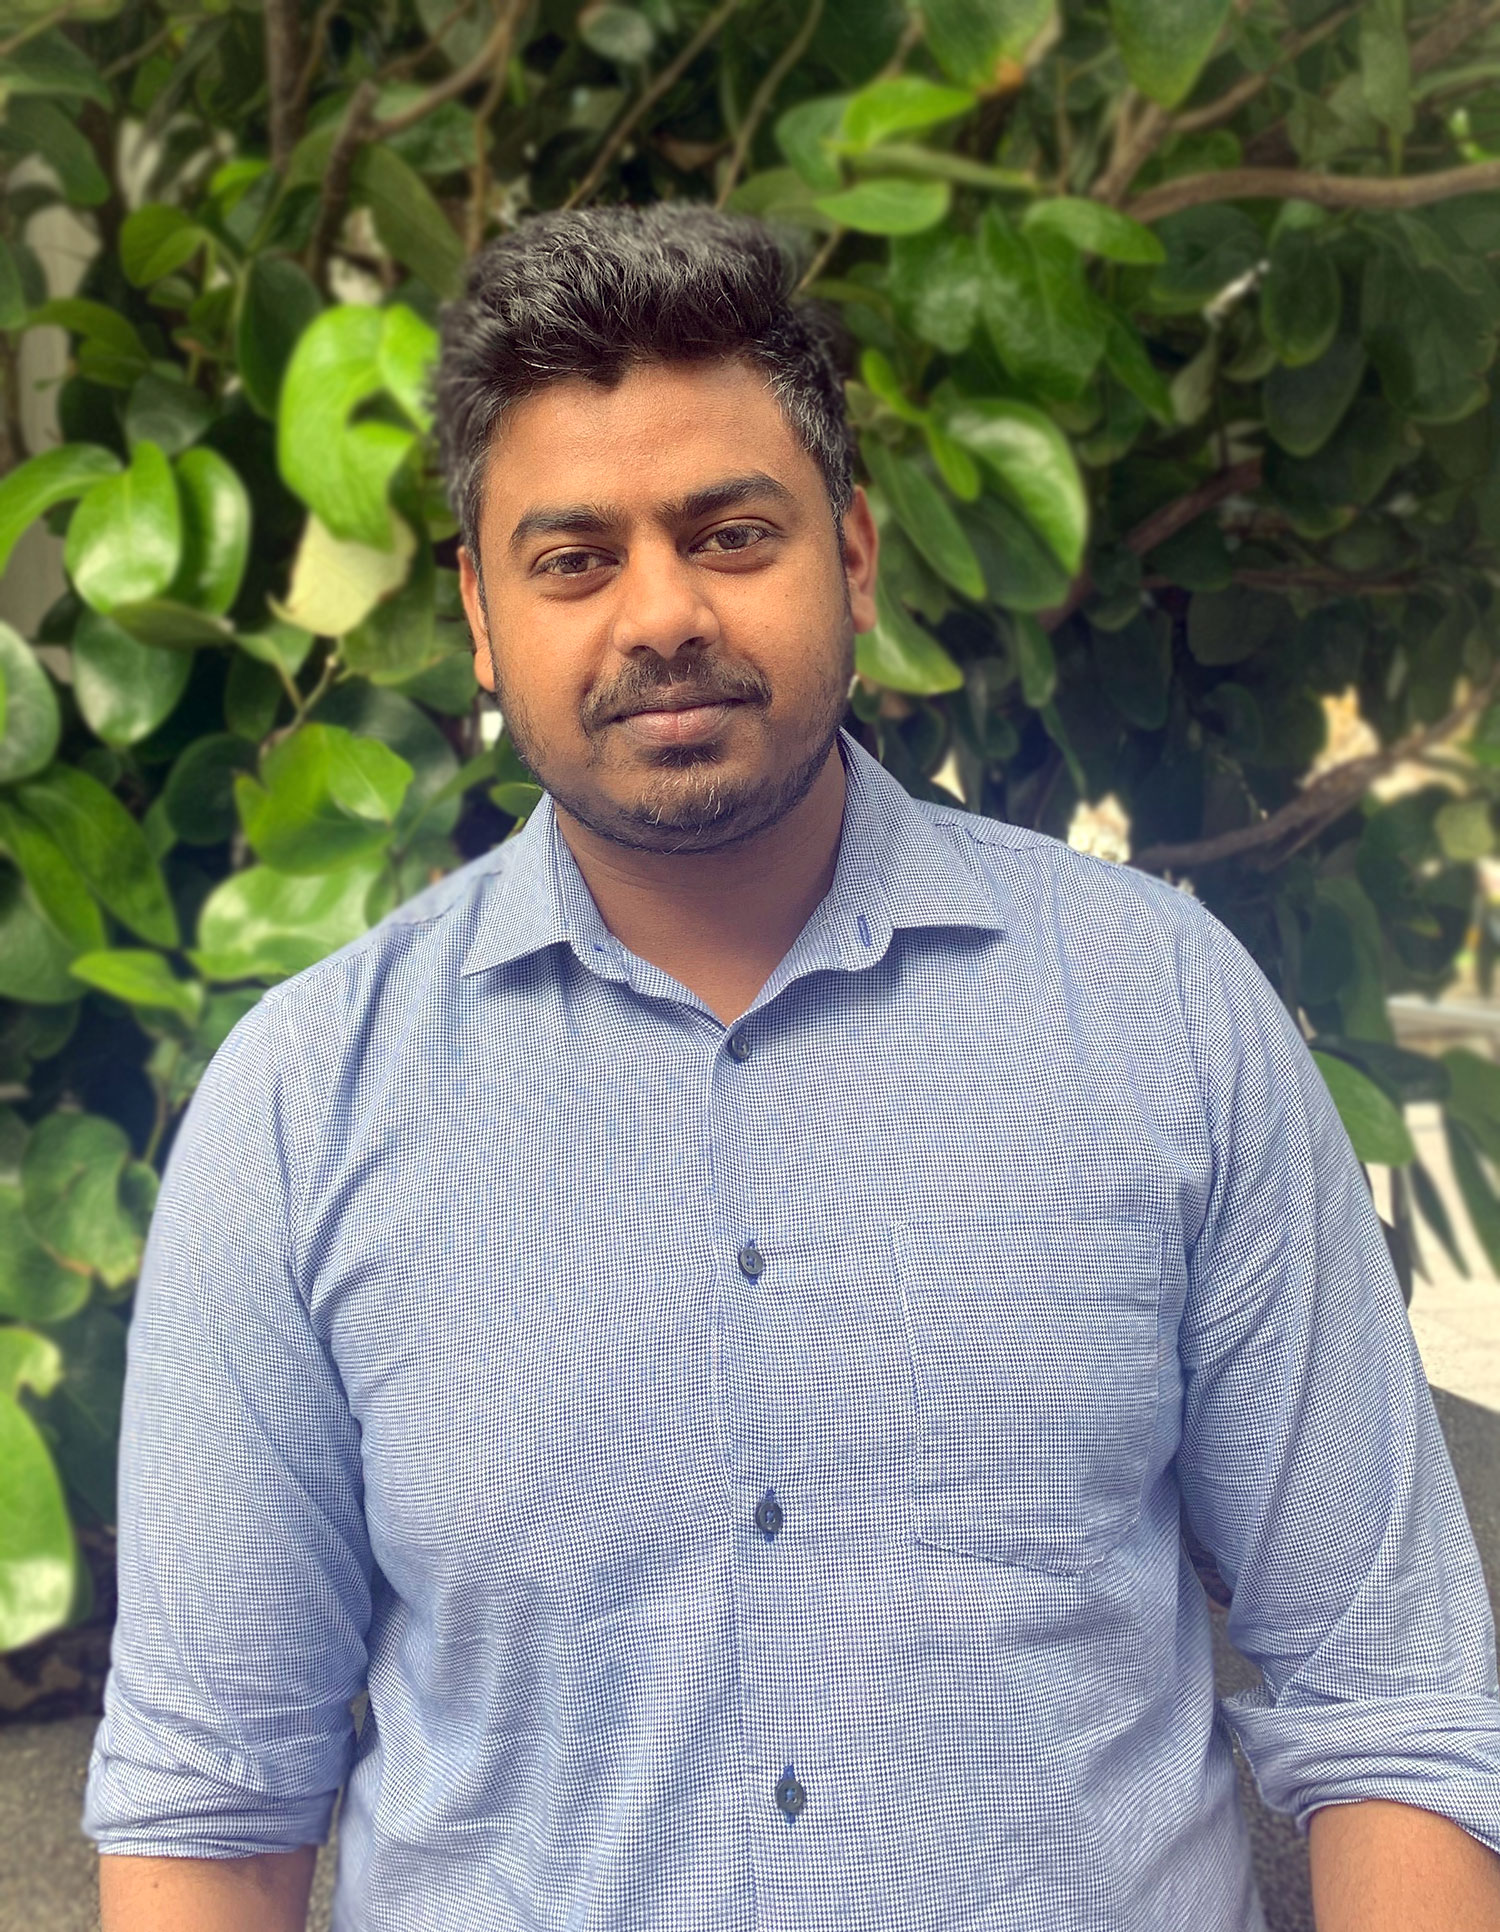 Thanjeedth profile picture